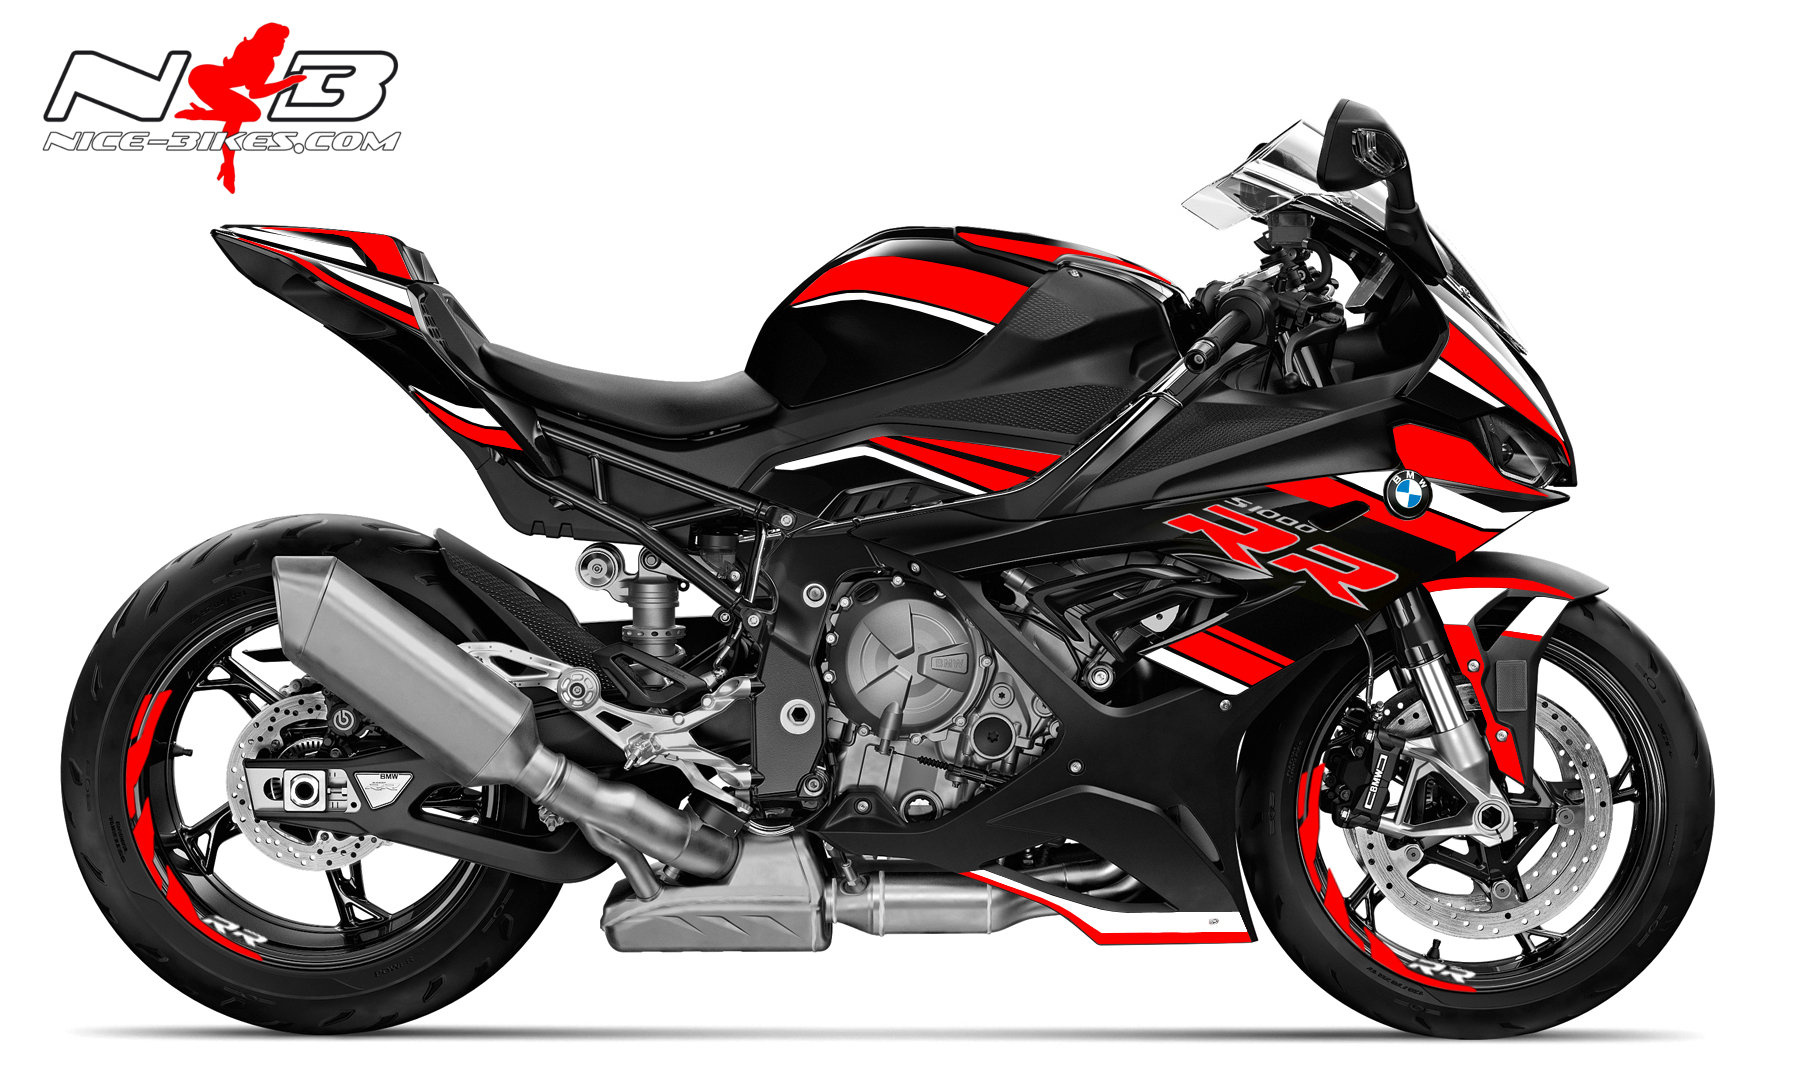 Foliendesign S1000RR (Bj. 2021) Racing Red